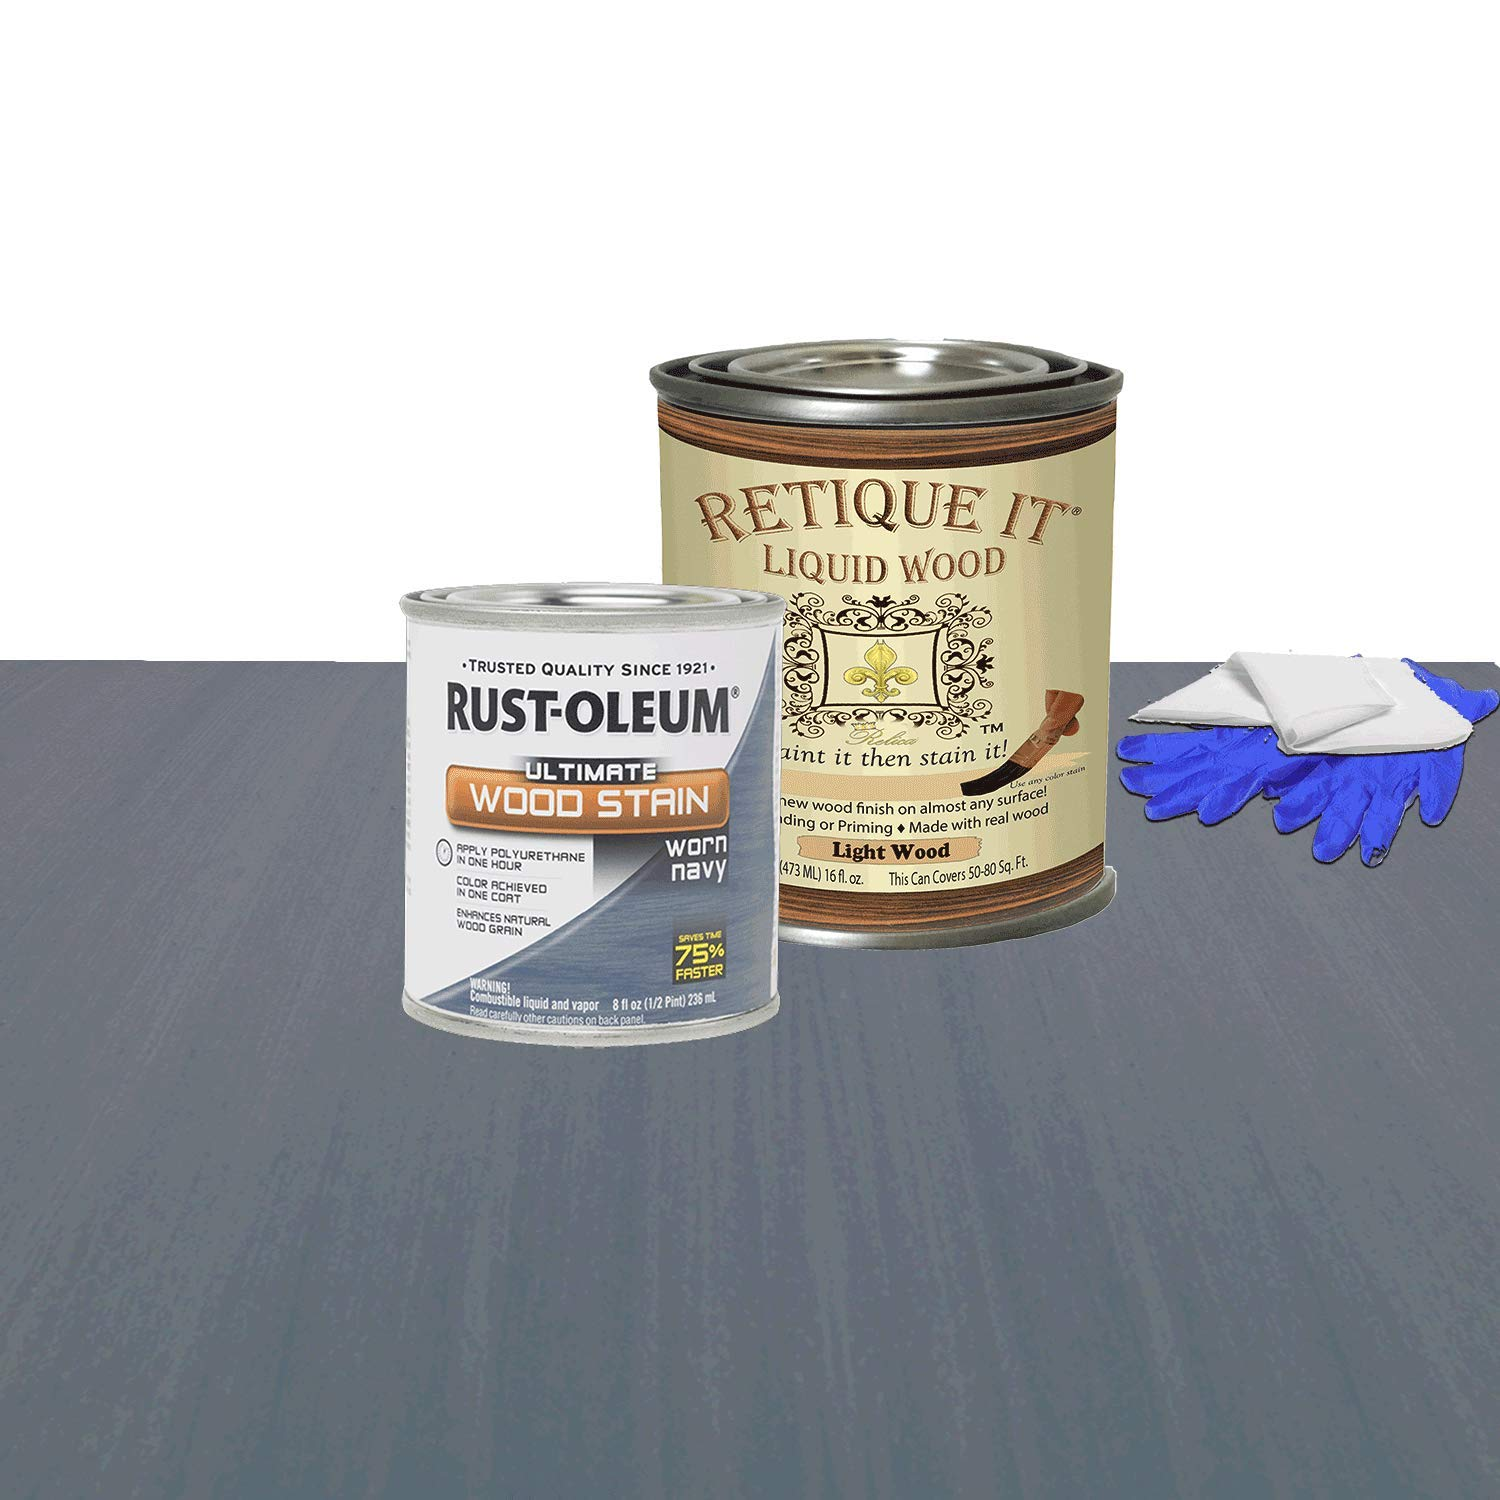 Retique It Liquid Wood - Pint Light Wood with Worn Navy Stain - Stainable Wood Fiber Paint - Put a fresh coat of wood on it (16oz LW, Worn Navy)